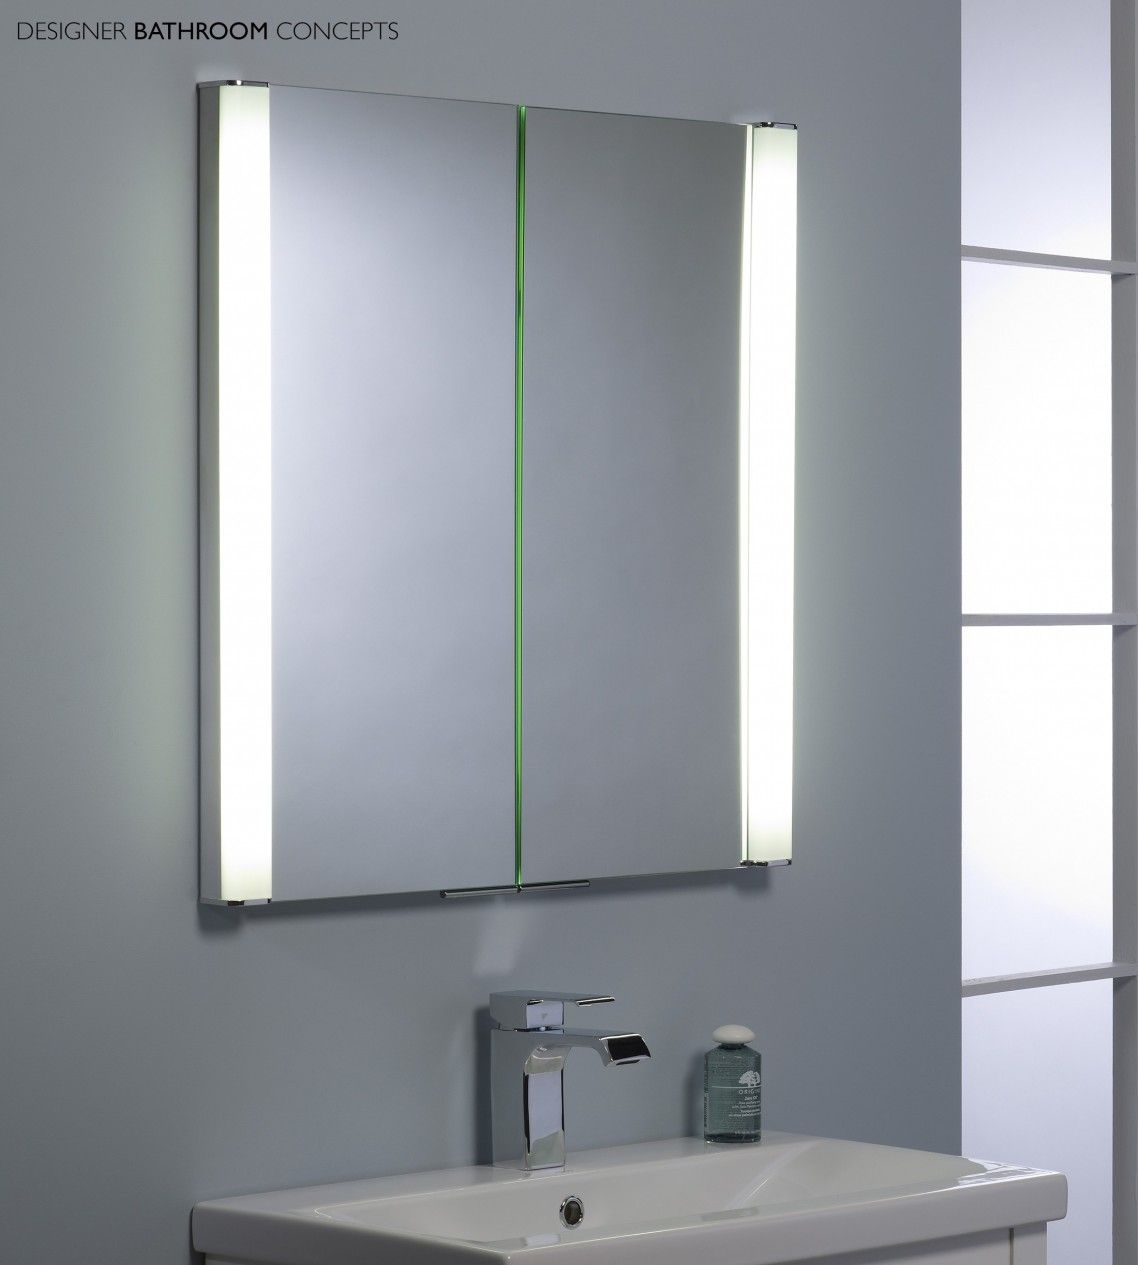 Stock Cabinets Modern S Mirrored Design Wall White Kitchen Cabinets Mount Lights On Stainless Fauc Mirror Cabinets Mirror Wall Bathroom Bathroom Mirror Cabinet [ 1265 x 1138 Pixel ]